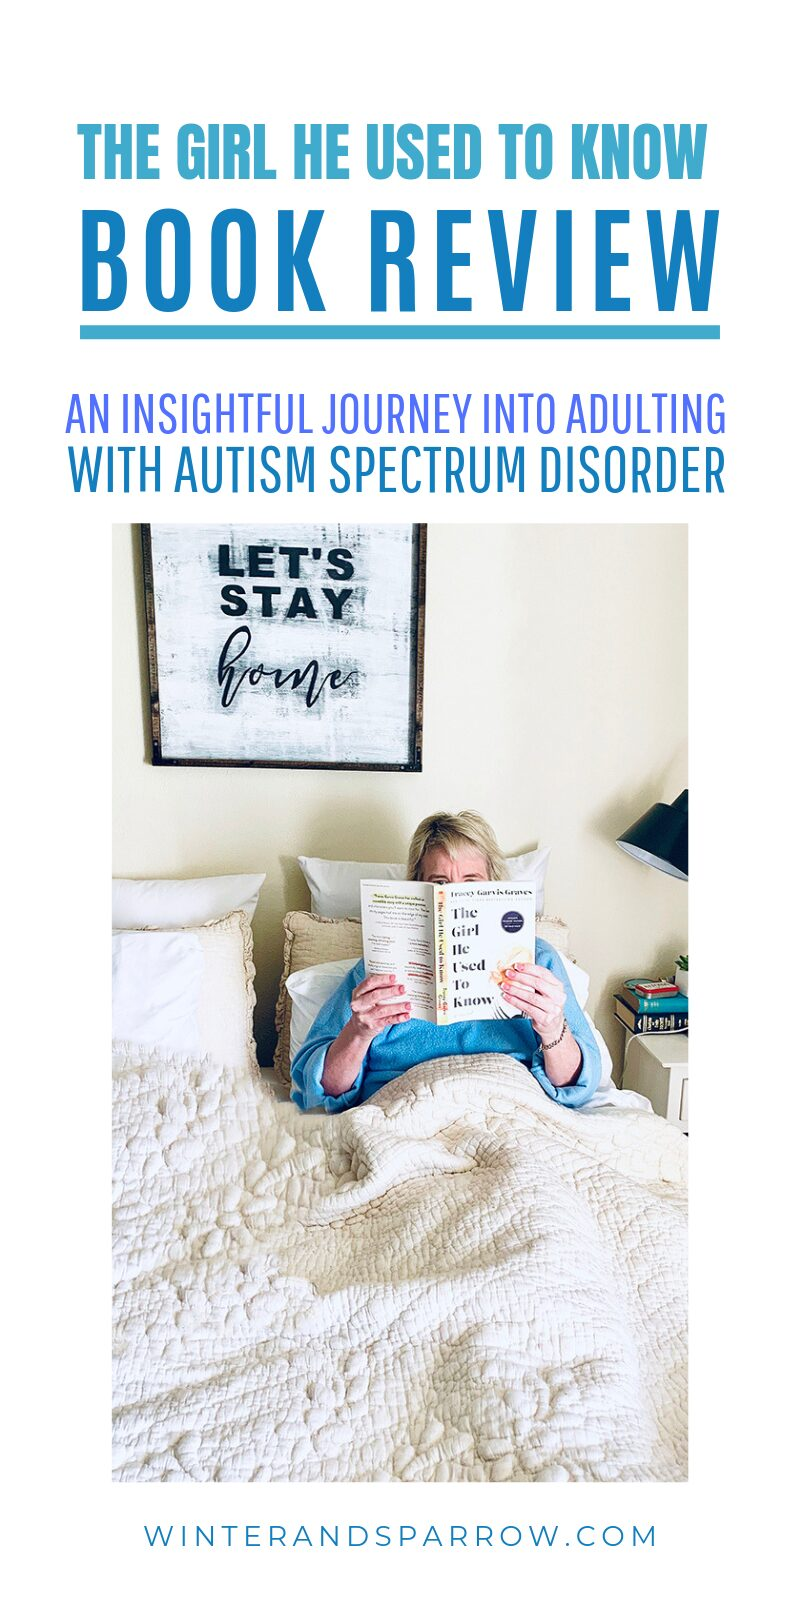 The Girl He Used To Know Book Review: An Insightful Journey Into LIVING with Autism Spectrum Disorder #ReadTheGirl #ad @StMartinsPress | winterandsparrow.com #newbookrelease #summerreads #bookreviews #ASD #livingwithautism #livingwithASD